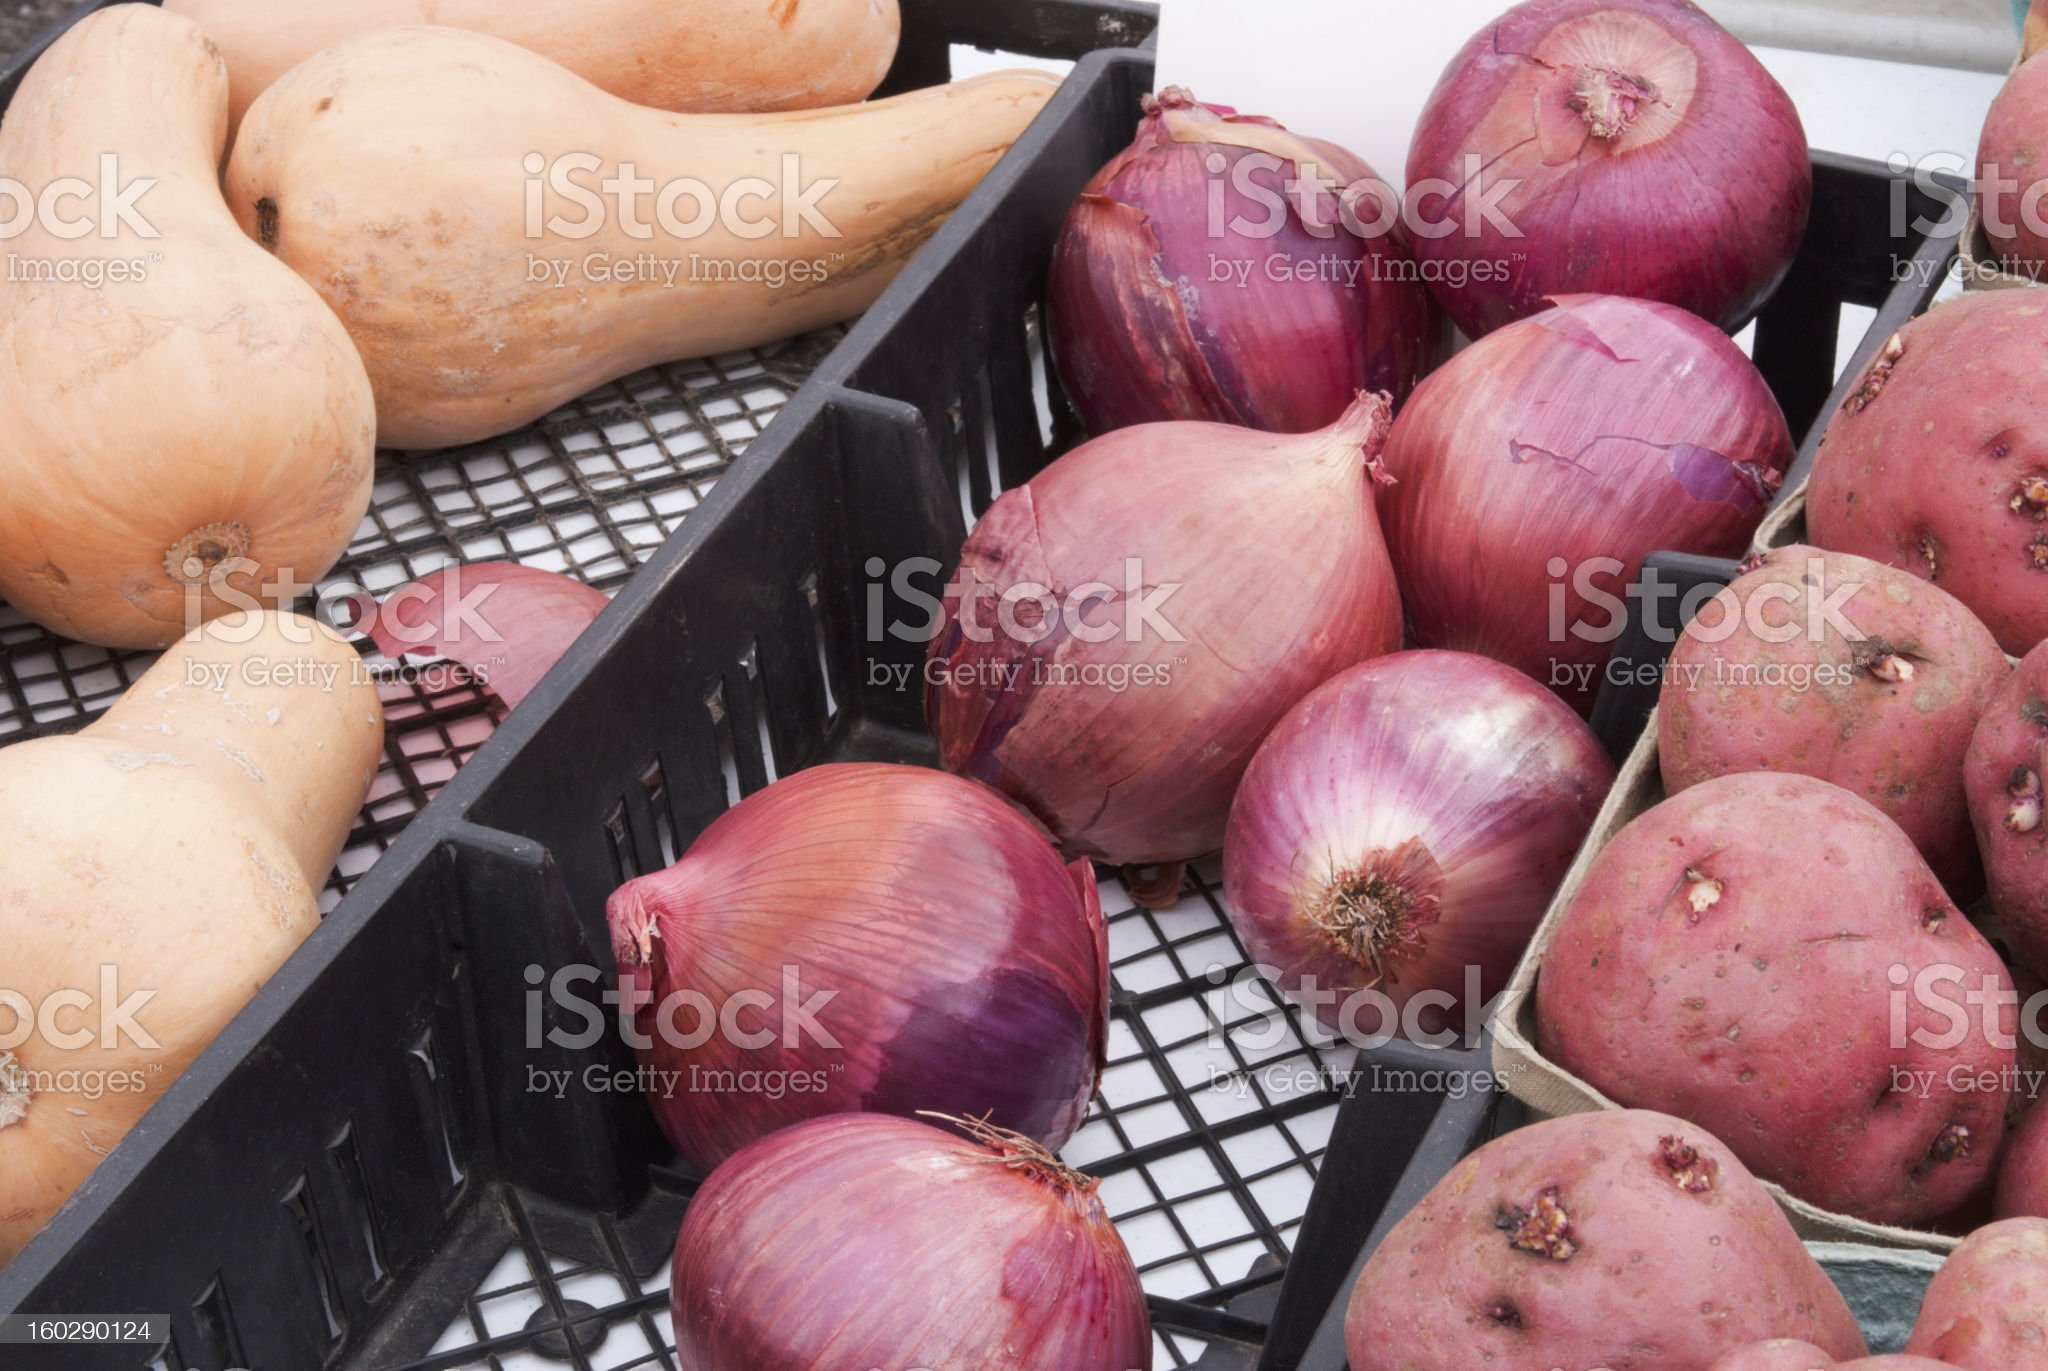 squash onions and potatoes for sale at a farmers market royalty-free stock photo